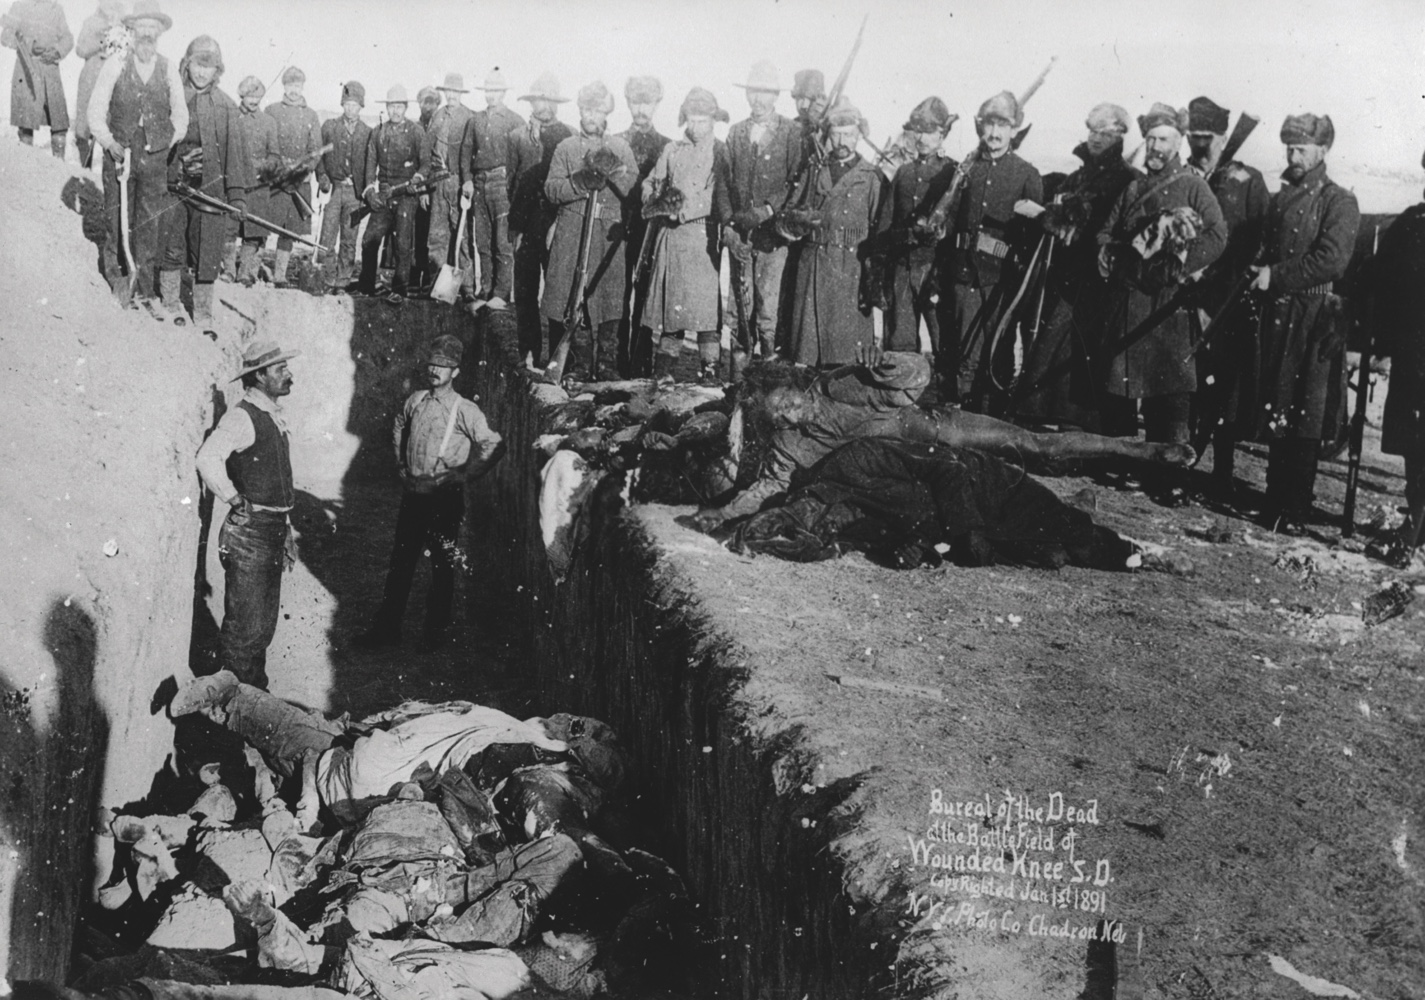 DPL480757 Bureal (burial) of the dead at the battlefield of Wounded Knee, South Dakota, 1891 (b/w photo) by American Photographer, (19th century); Denver Public Library, Western History Collection; (add.info.: The Wounded Knee Massacre happened on December 29, 1890, near Wounded Knee Creek.); American,  out of copyright